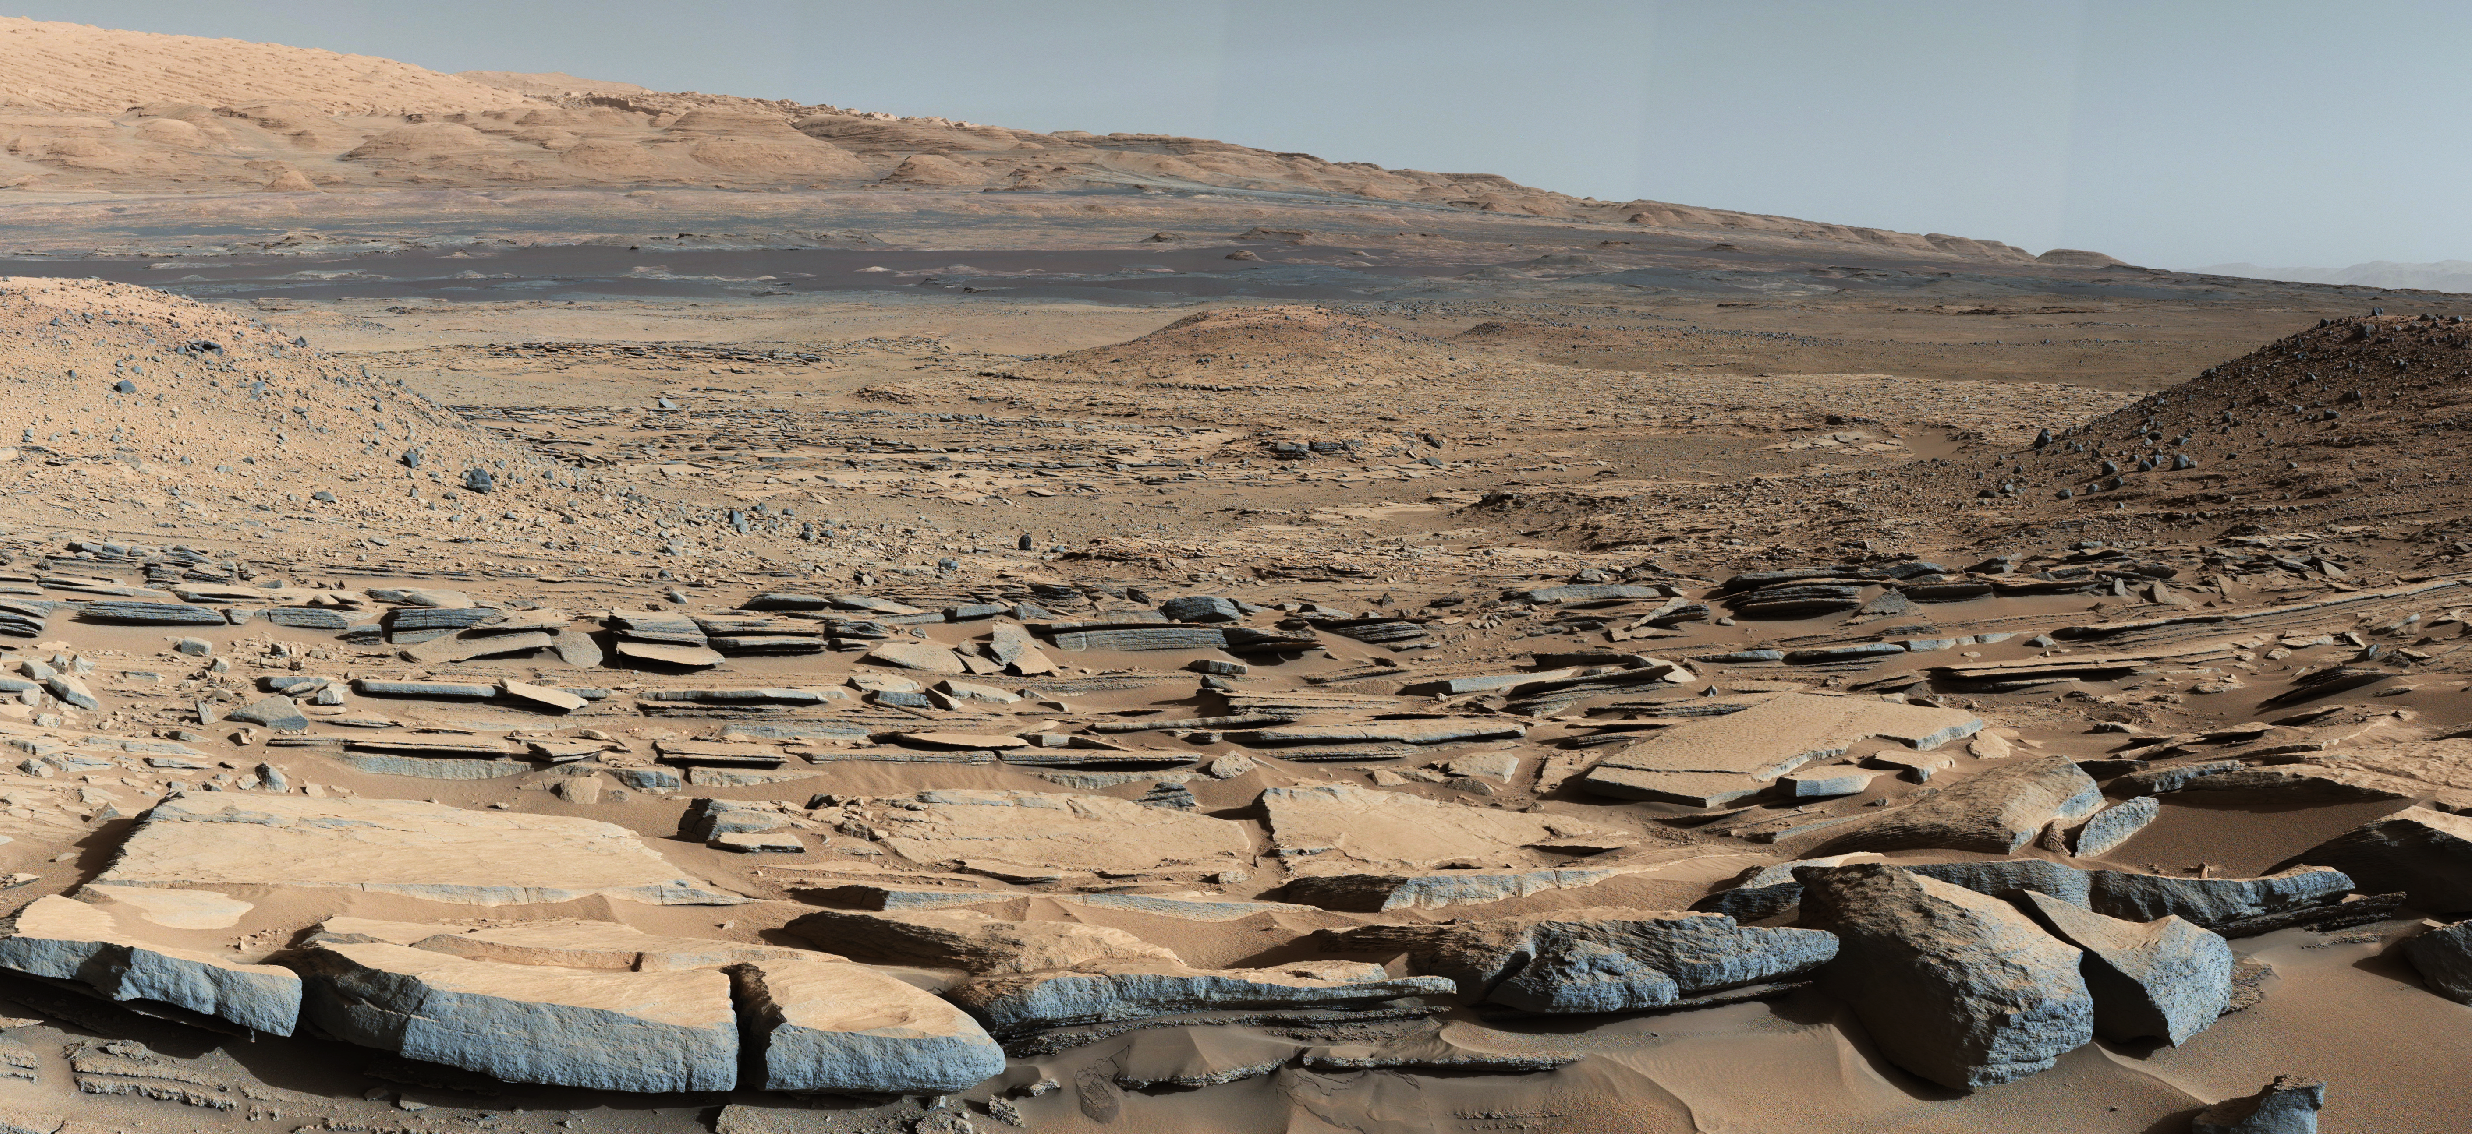 "A view from the ""Kimberley"" formation on Mars taken by NASA's Curiosity rover. The strata in the foreground dip towards the base of Mount Sharp, indicating flow of water toward a basin that existed before the larger bulk of the mountain formed. Credits: NASA"